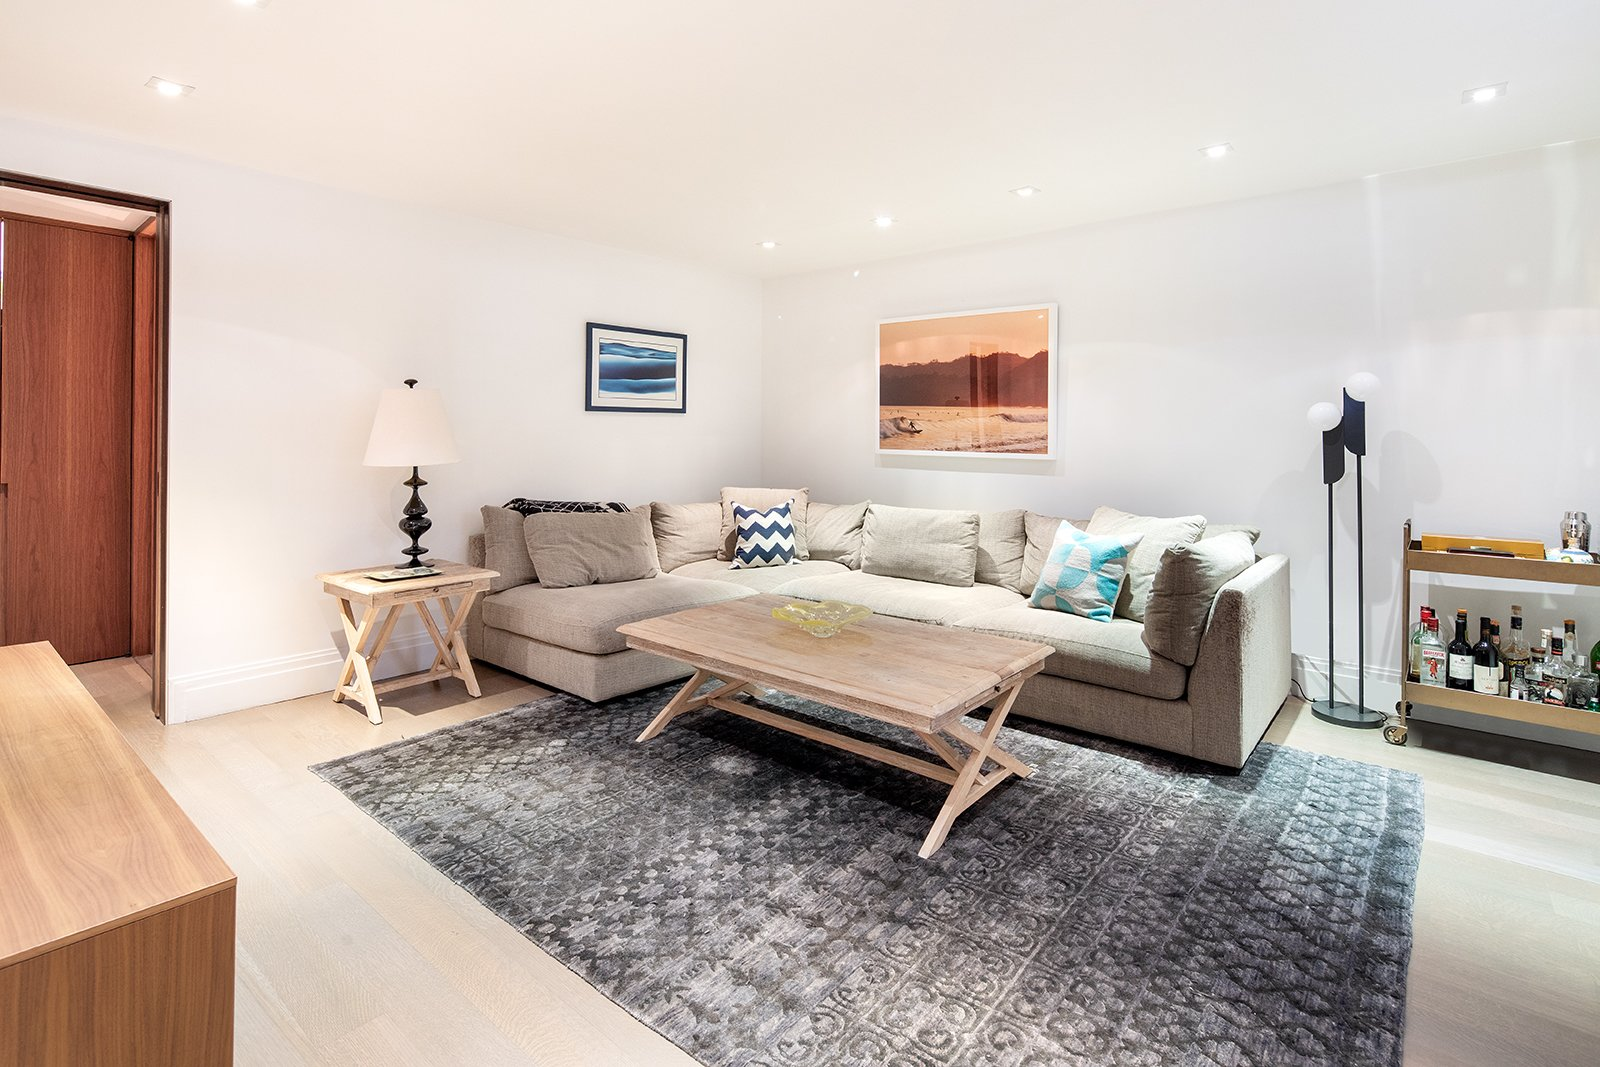 Living Room, Light Hardwood Floor, Sofa, Recessed Lighting, Table Lighting, End Tables, Coffee Tables, Floor Lighting, and Rug Floor The third bedroom is presently used as a family room.    Best Photos from An Updated 1845 Brooklyn Home Hits the Market at $2.95M